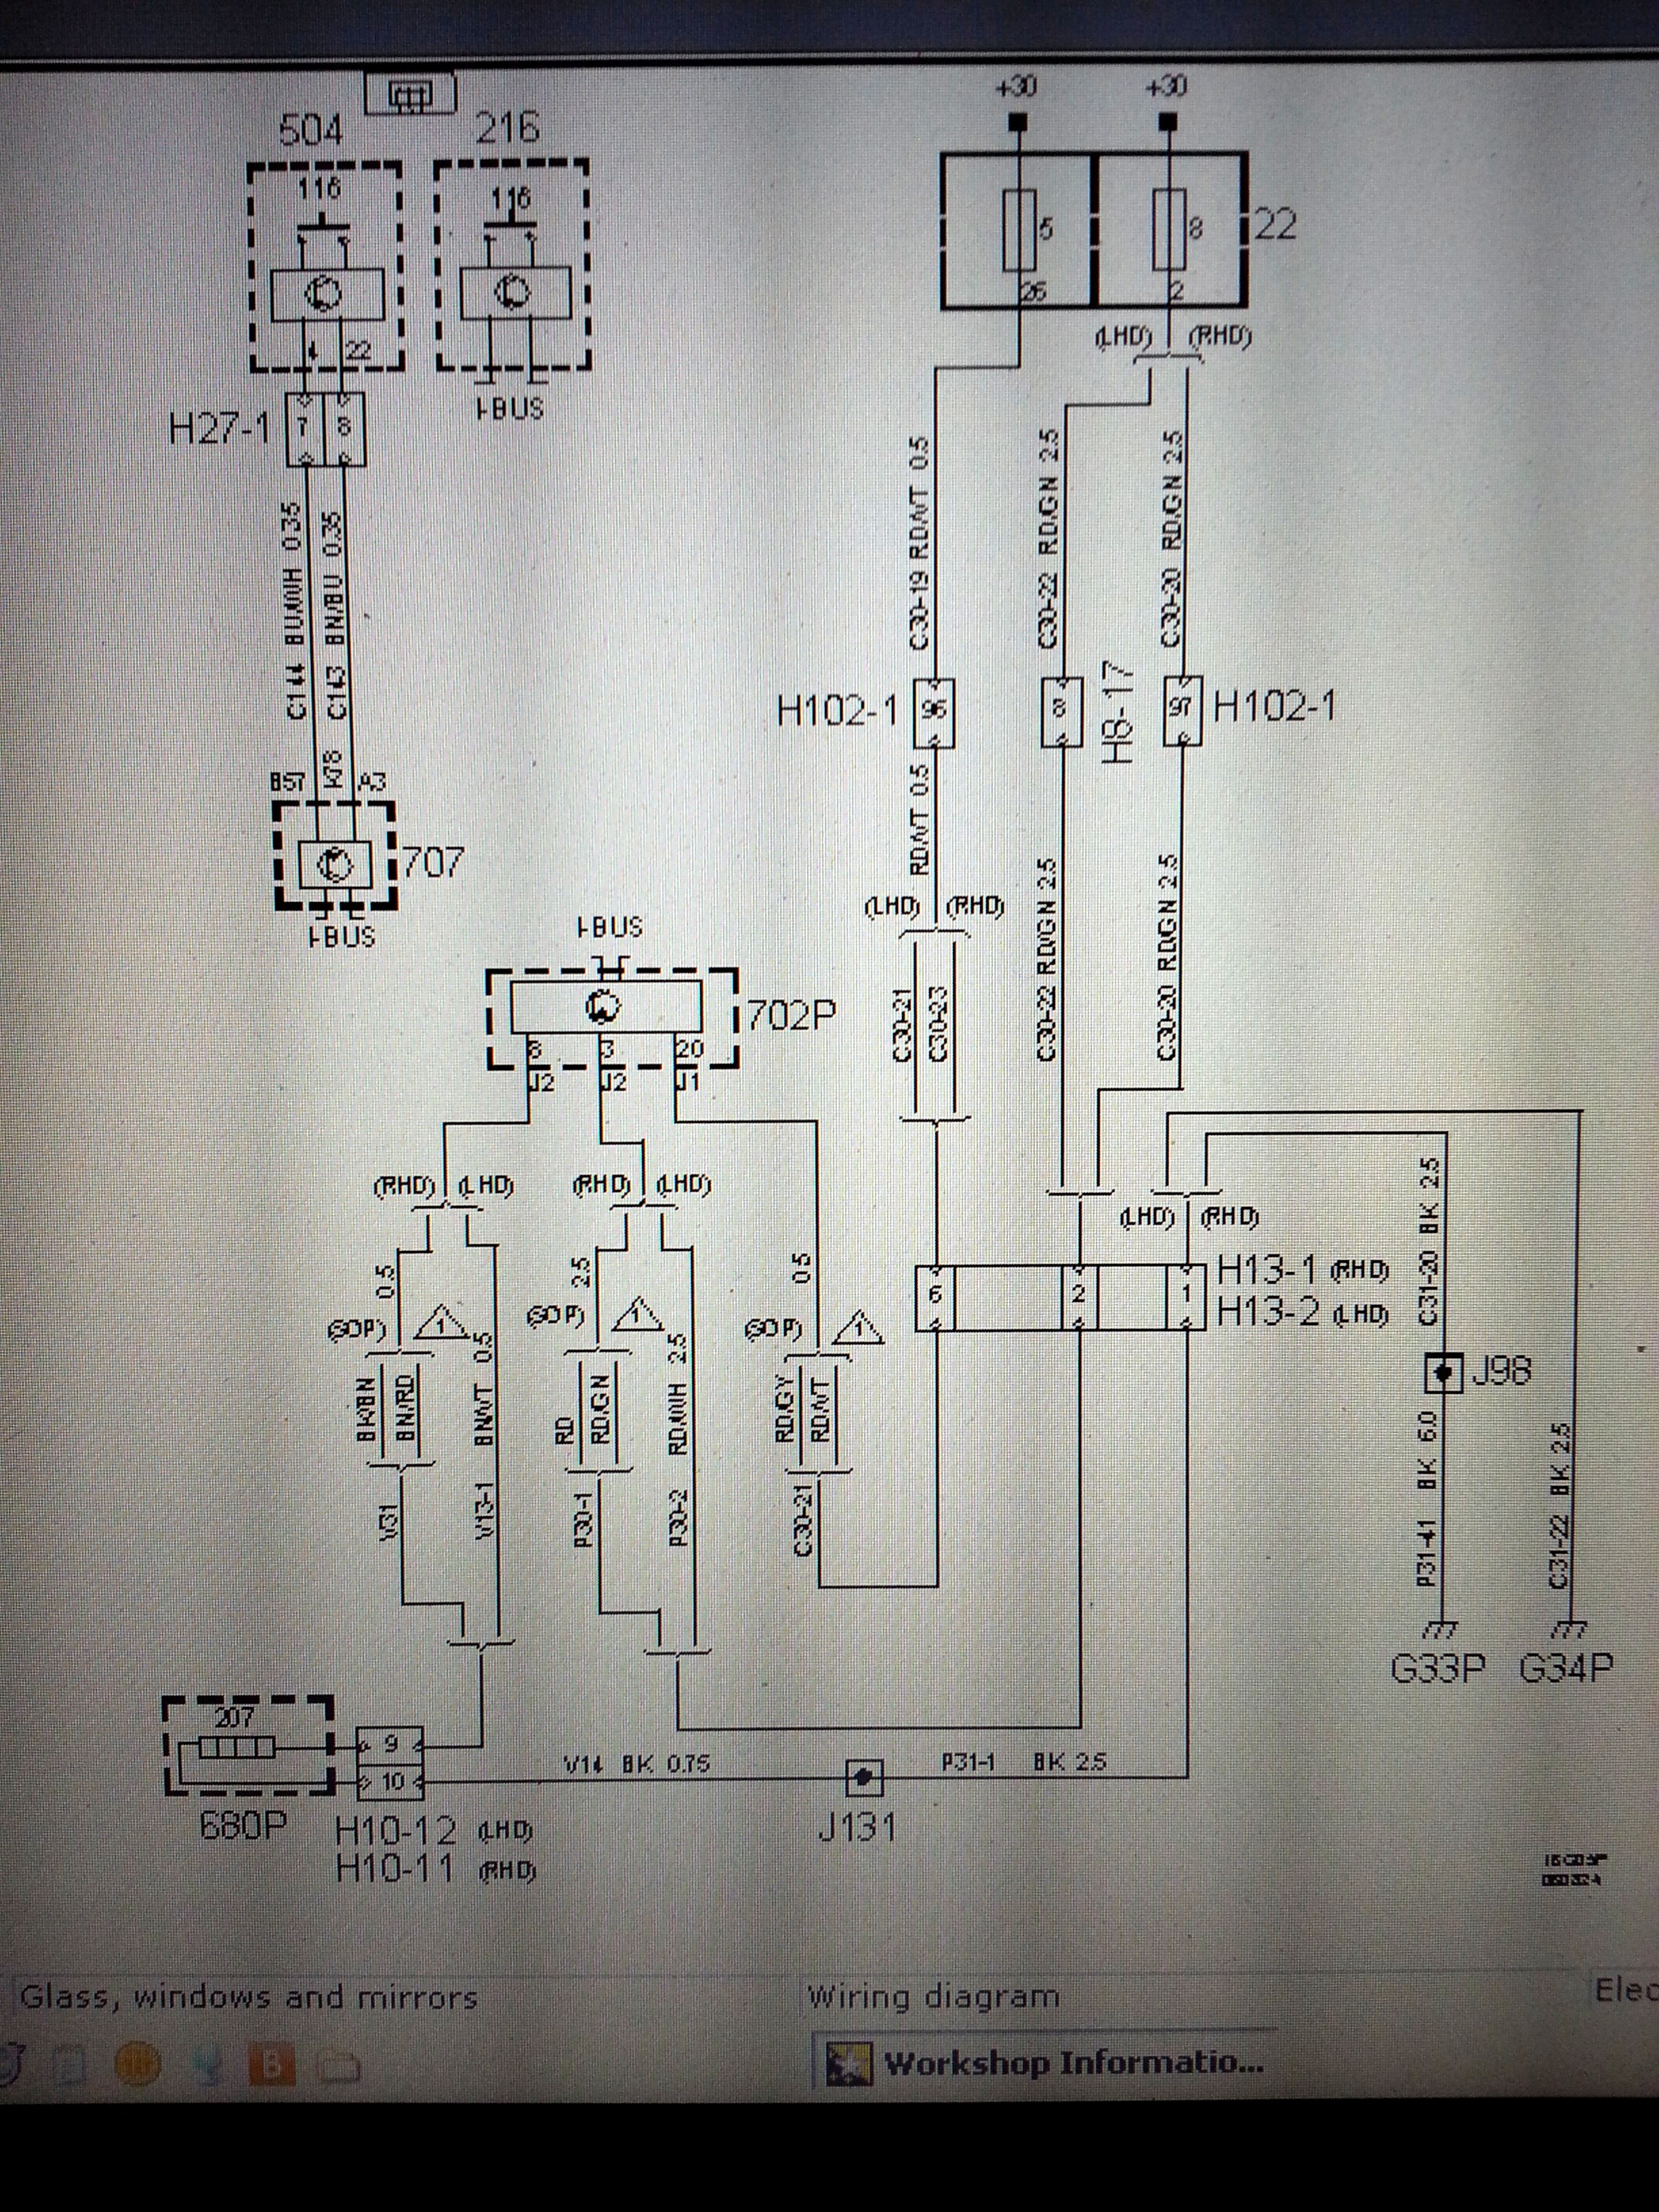 2006 Saab 9 3 Fuse Diagram Wiring Library 2003 Box Mirror Block And Schematic Diagrams U2022